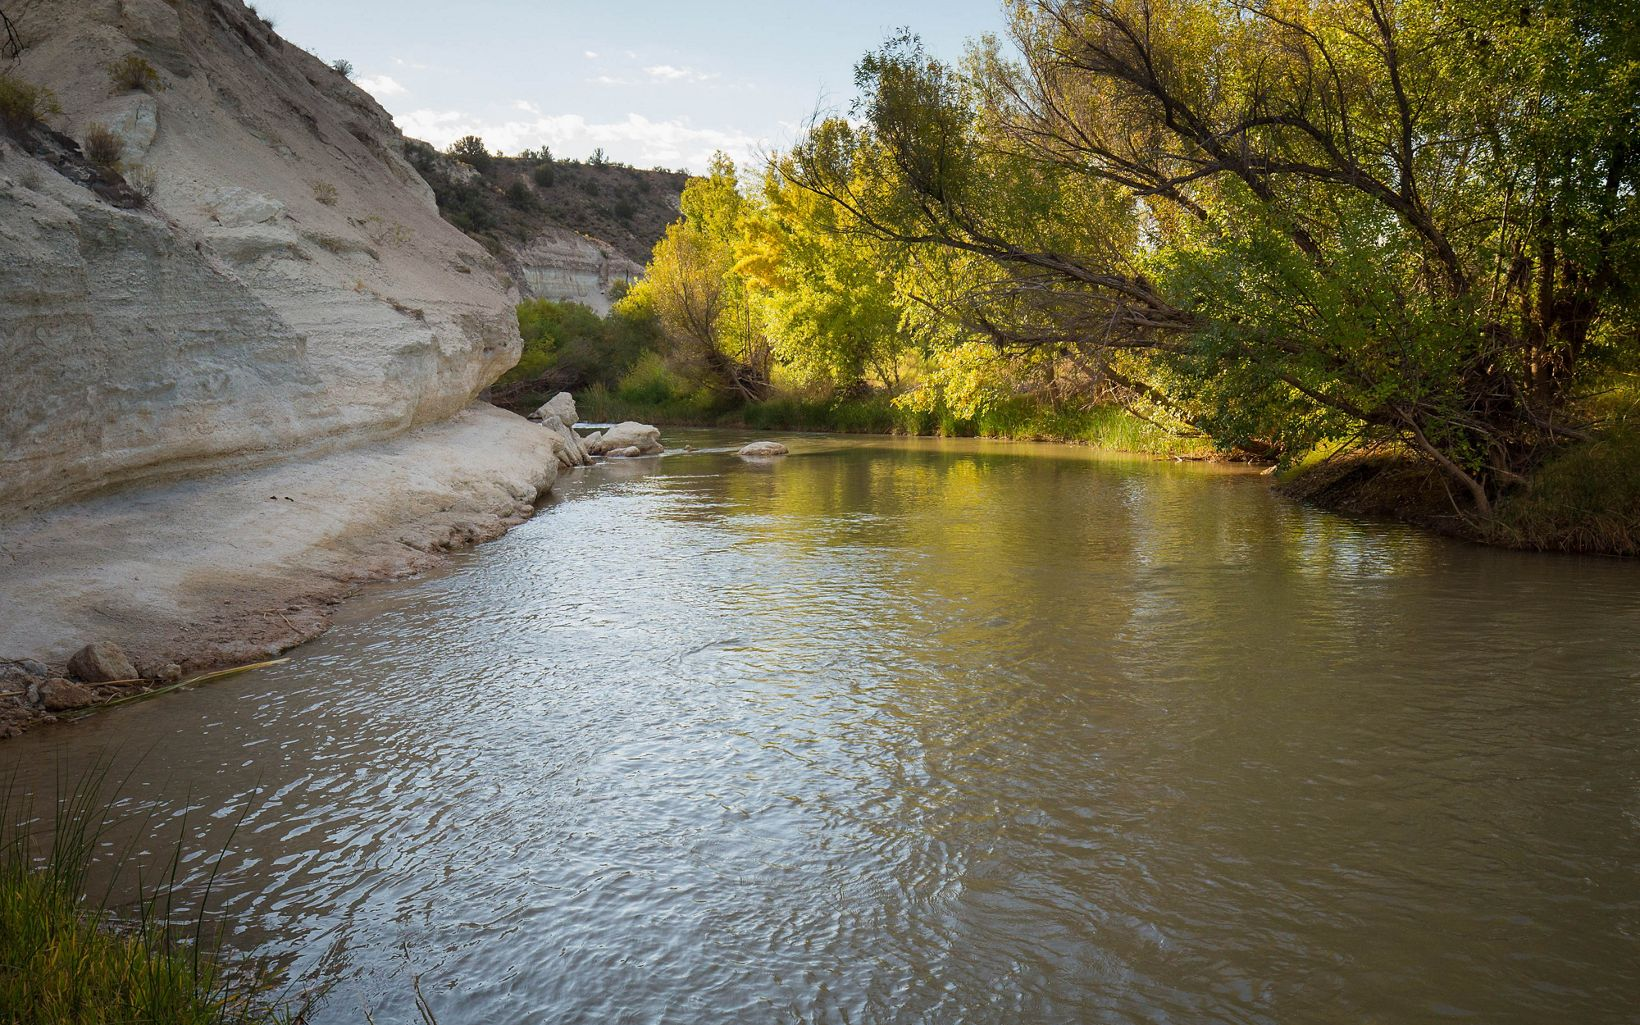 The Verde river near Camp Verde, Arizona.